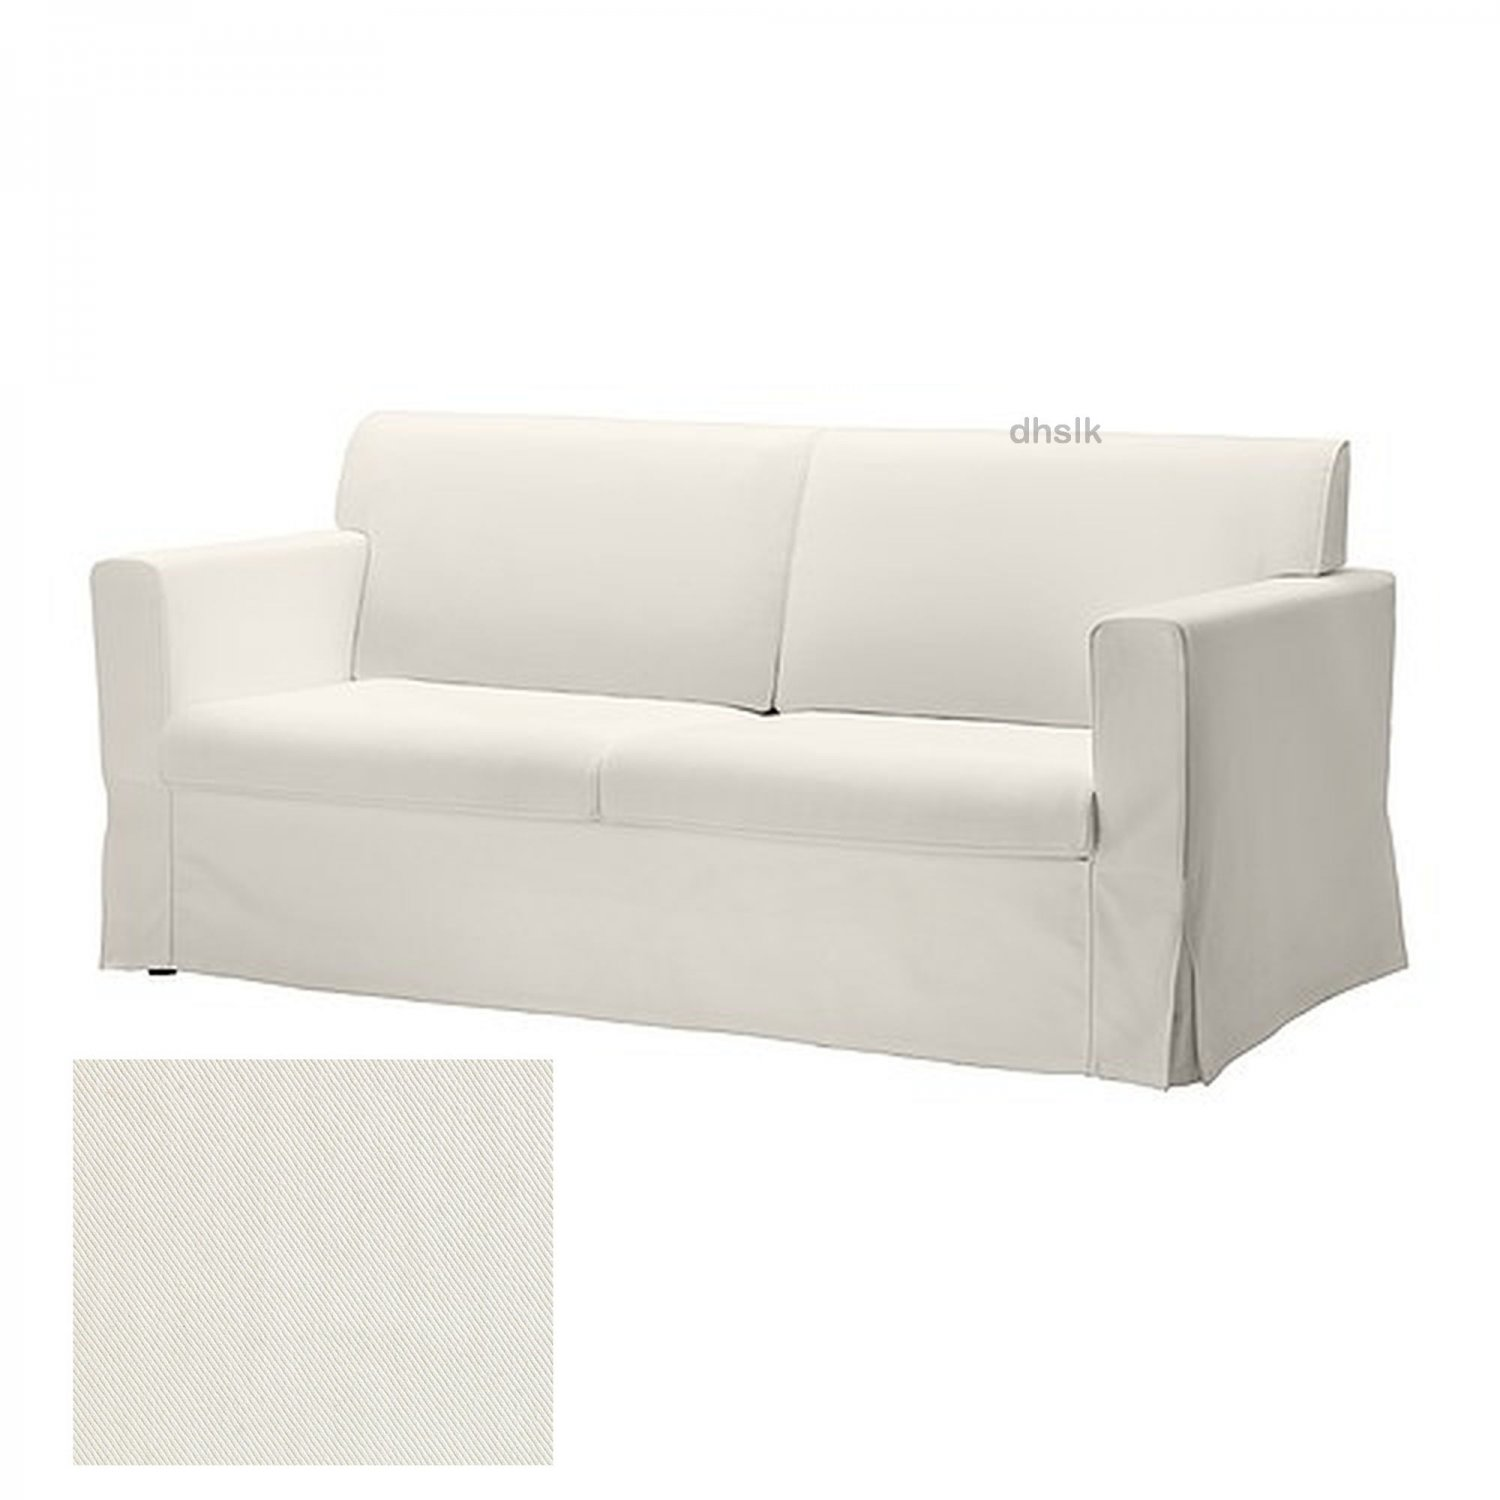 white sofa slipcover cotton wall art living rooms ikea sandby 3 seat cover blekinge